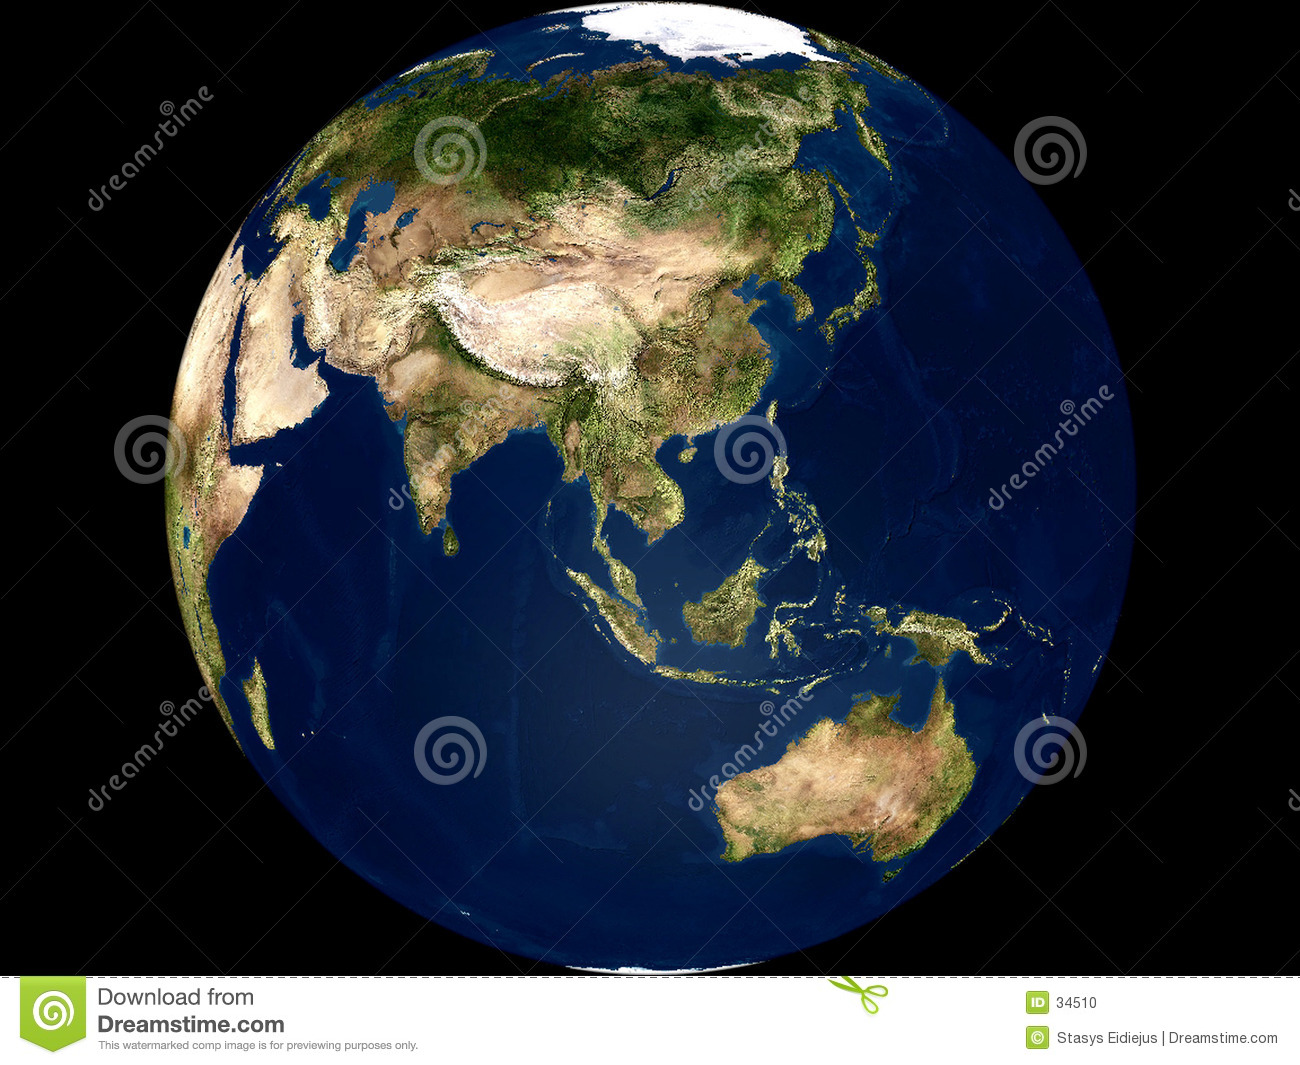 Earth view - Asia and Australia